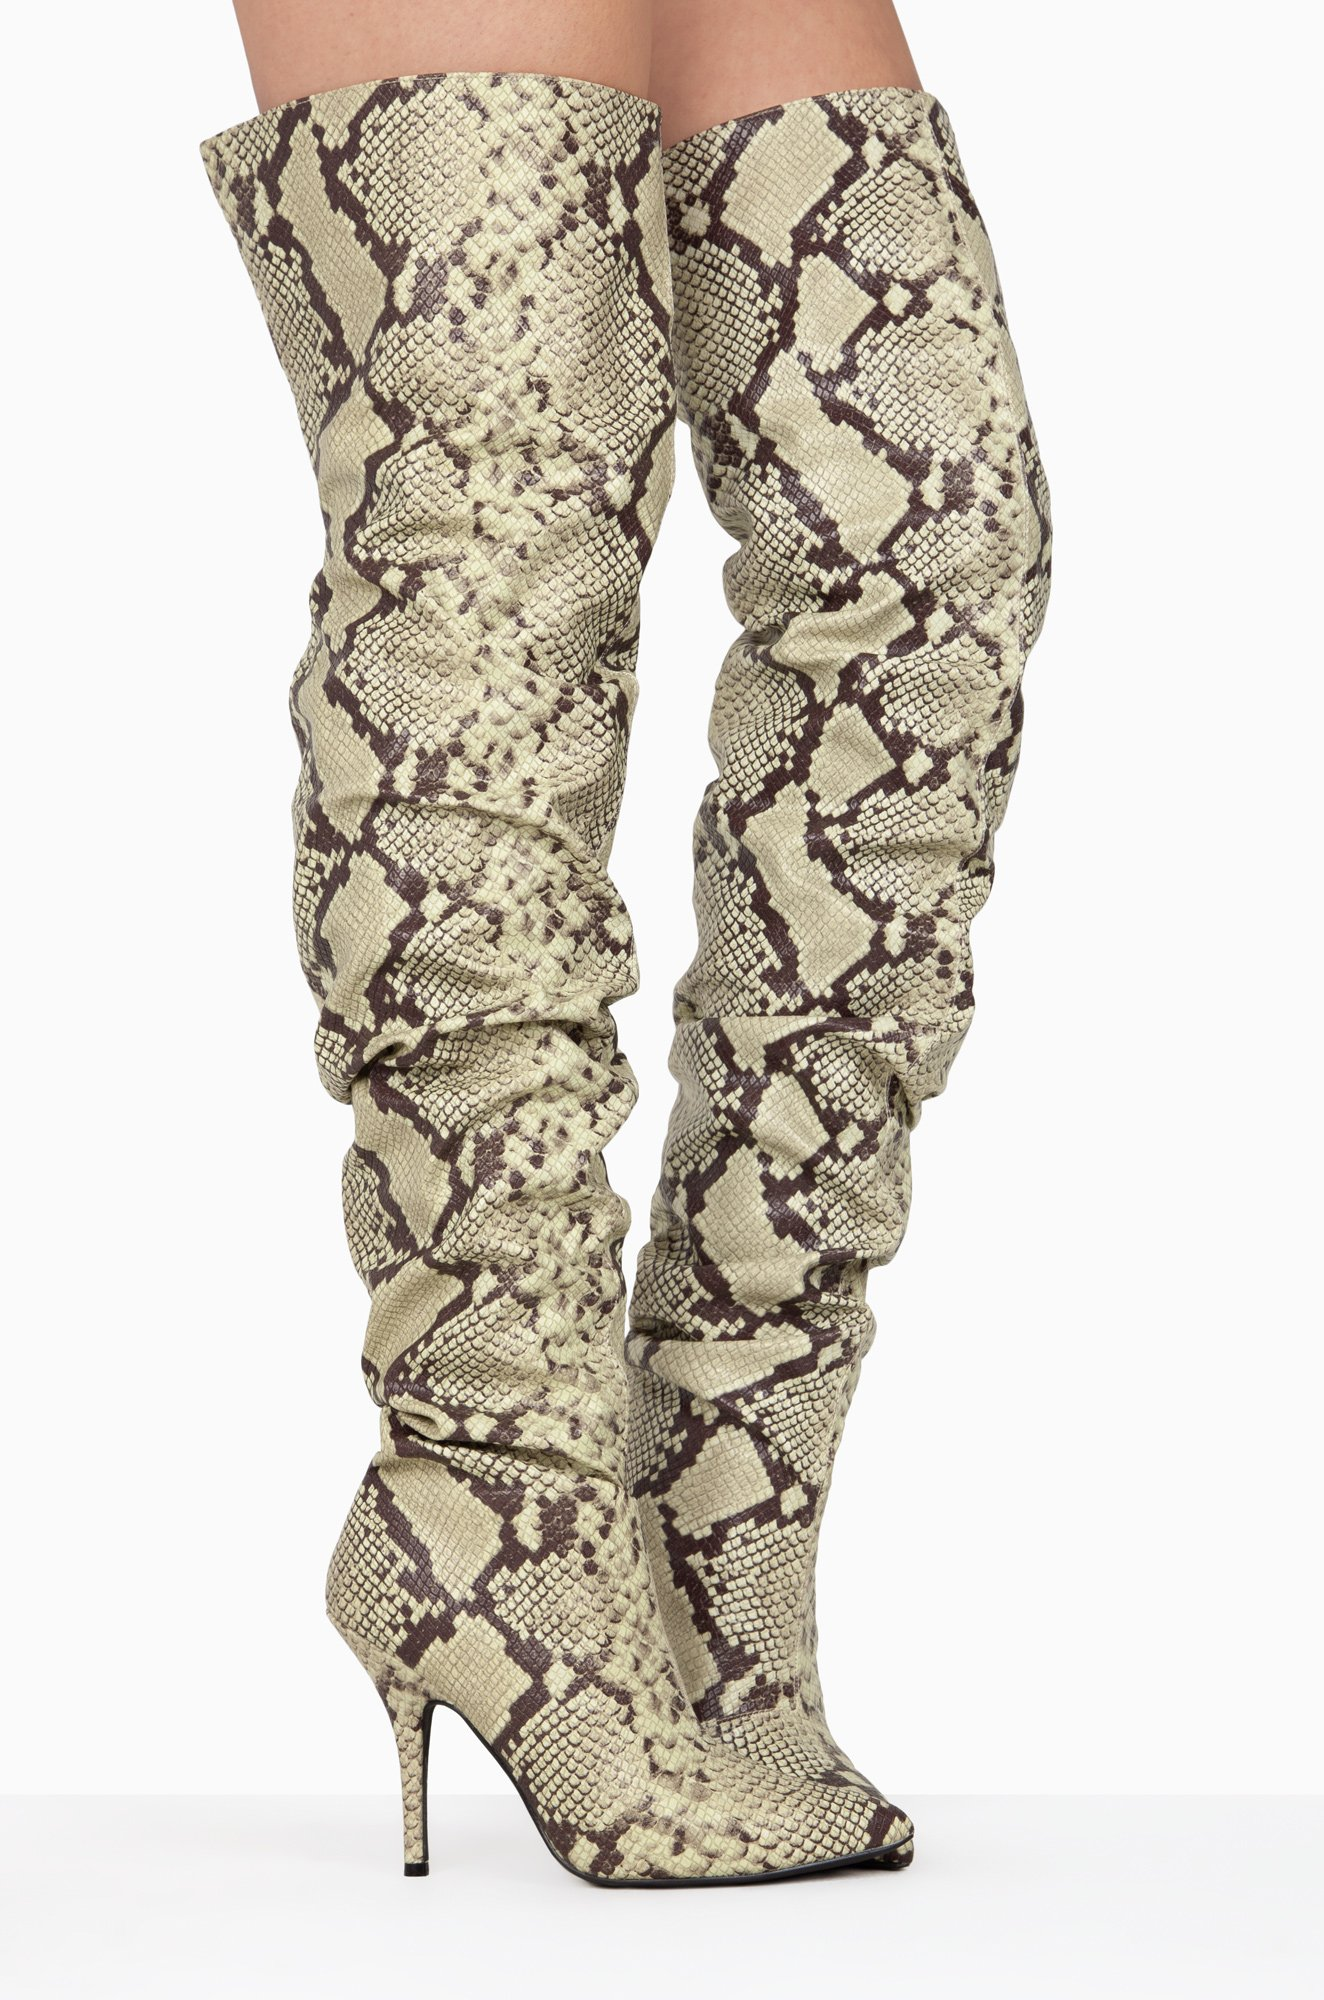 Cape-Robbin-Bown-Snake-Thigh-High-Slouch-Pointed-Toe-Over-The-Knee-Stiletto-Boot thumbnail 69